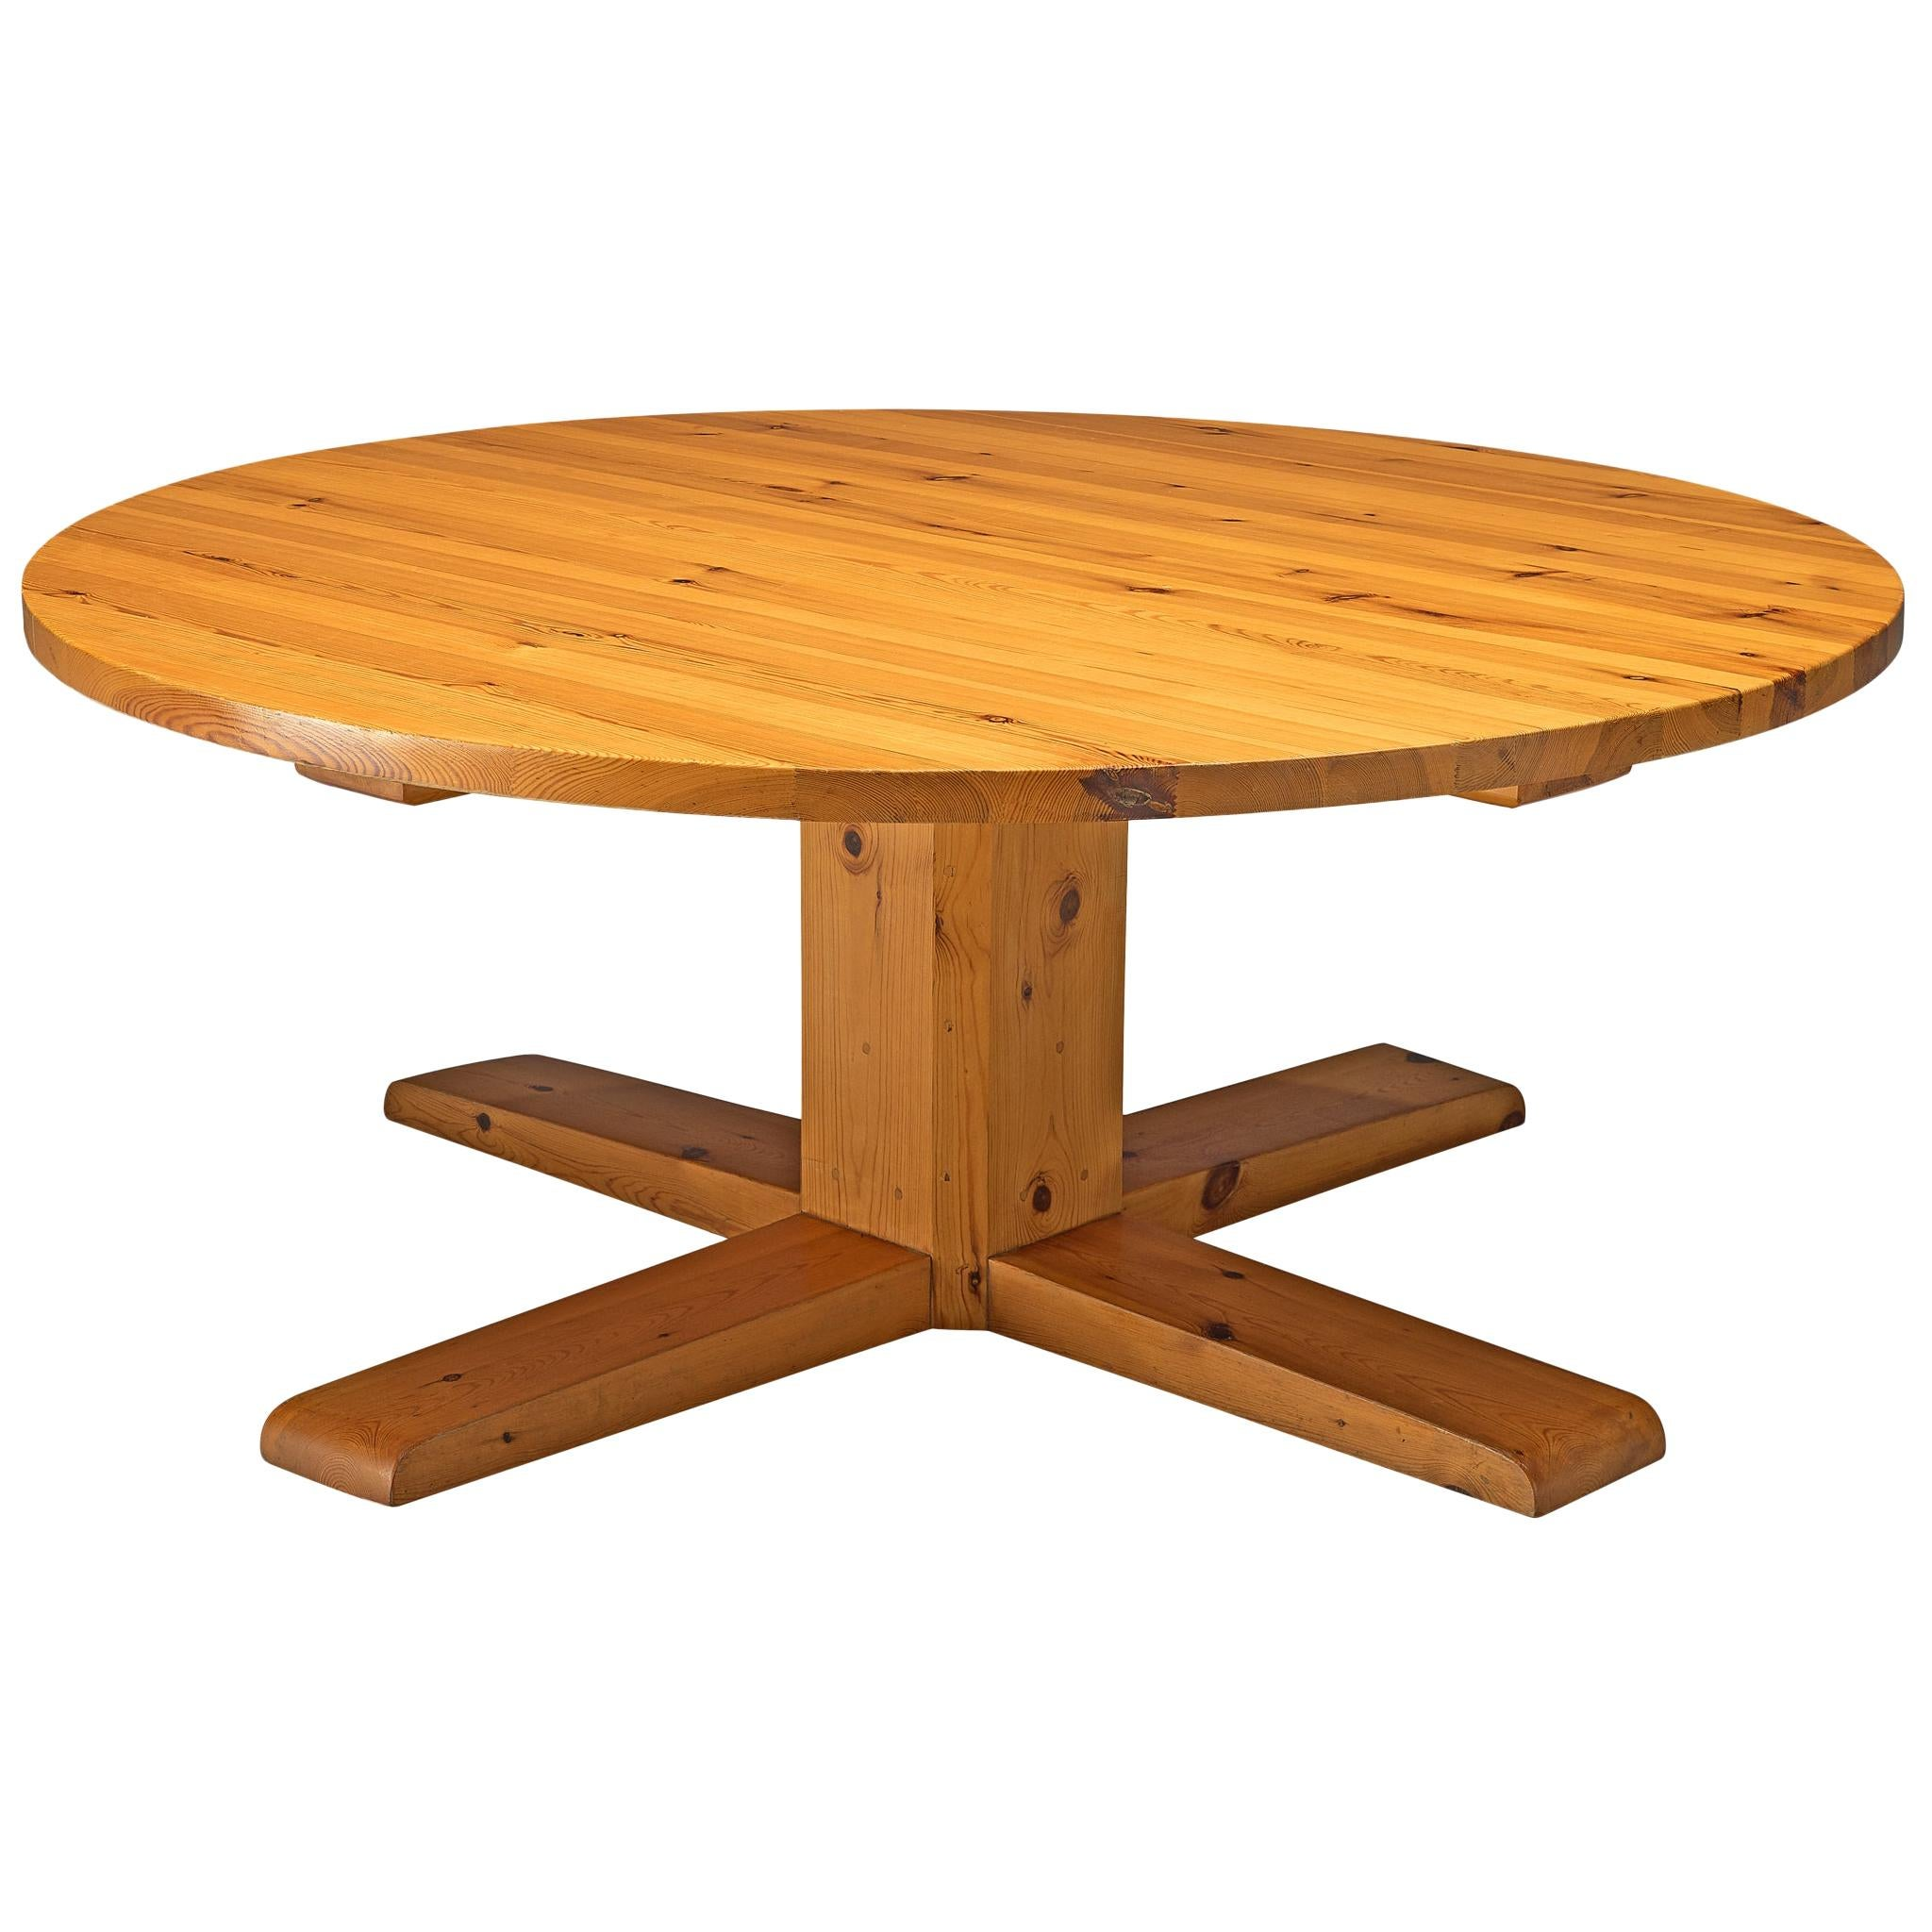 Spanish Dining Table in Solid Pinewood